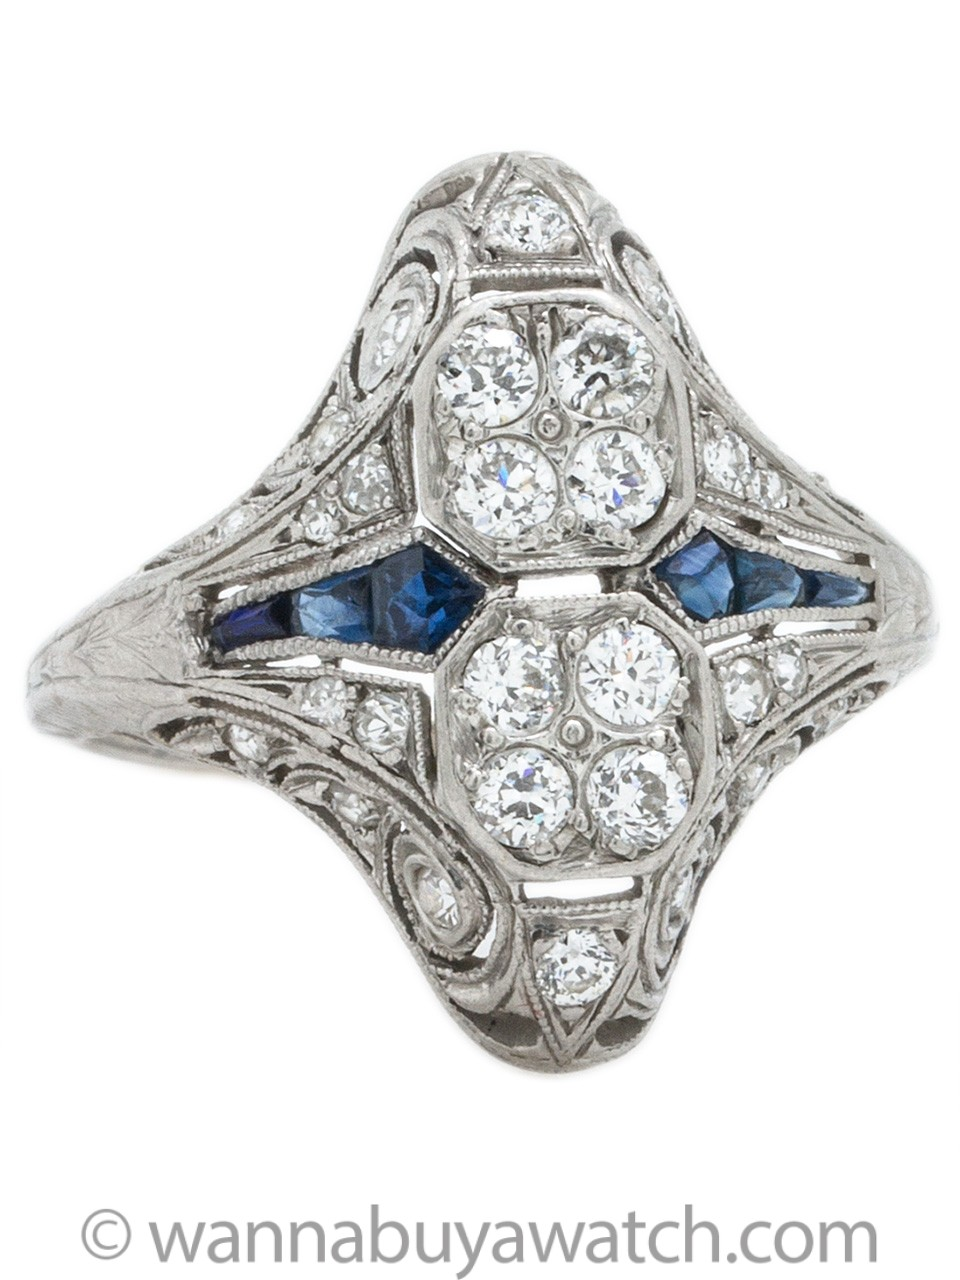 Stunning Art Deco Platinum Diamond & Sapphire Cocktail Ring circa 1920s